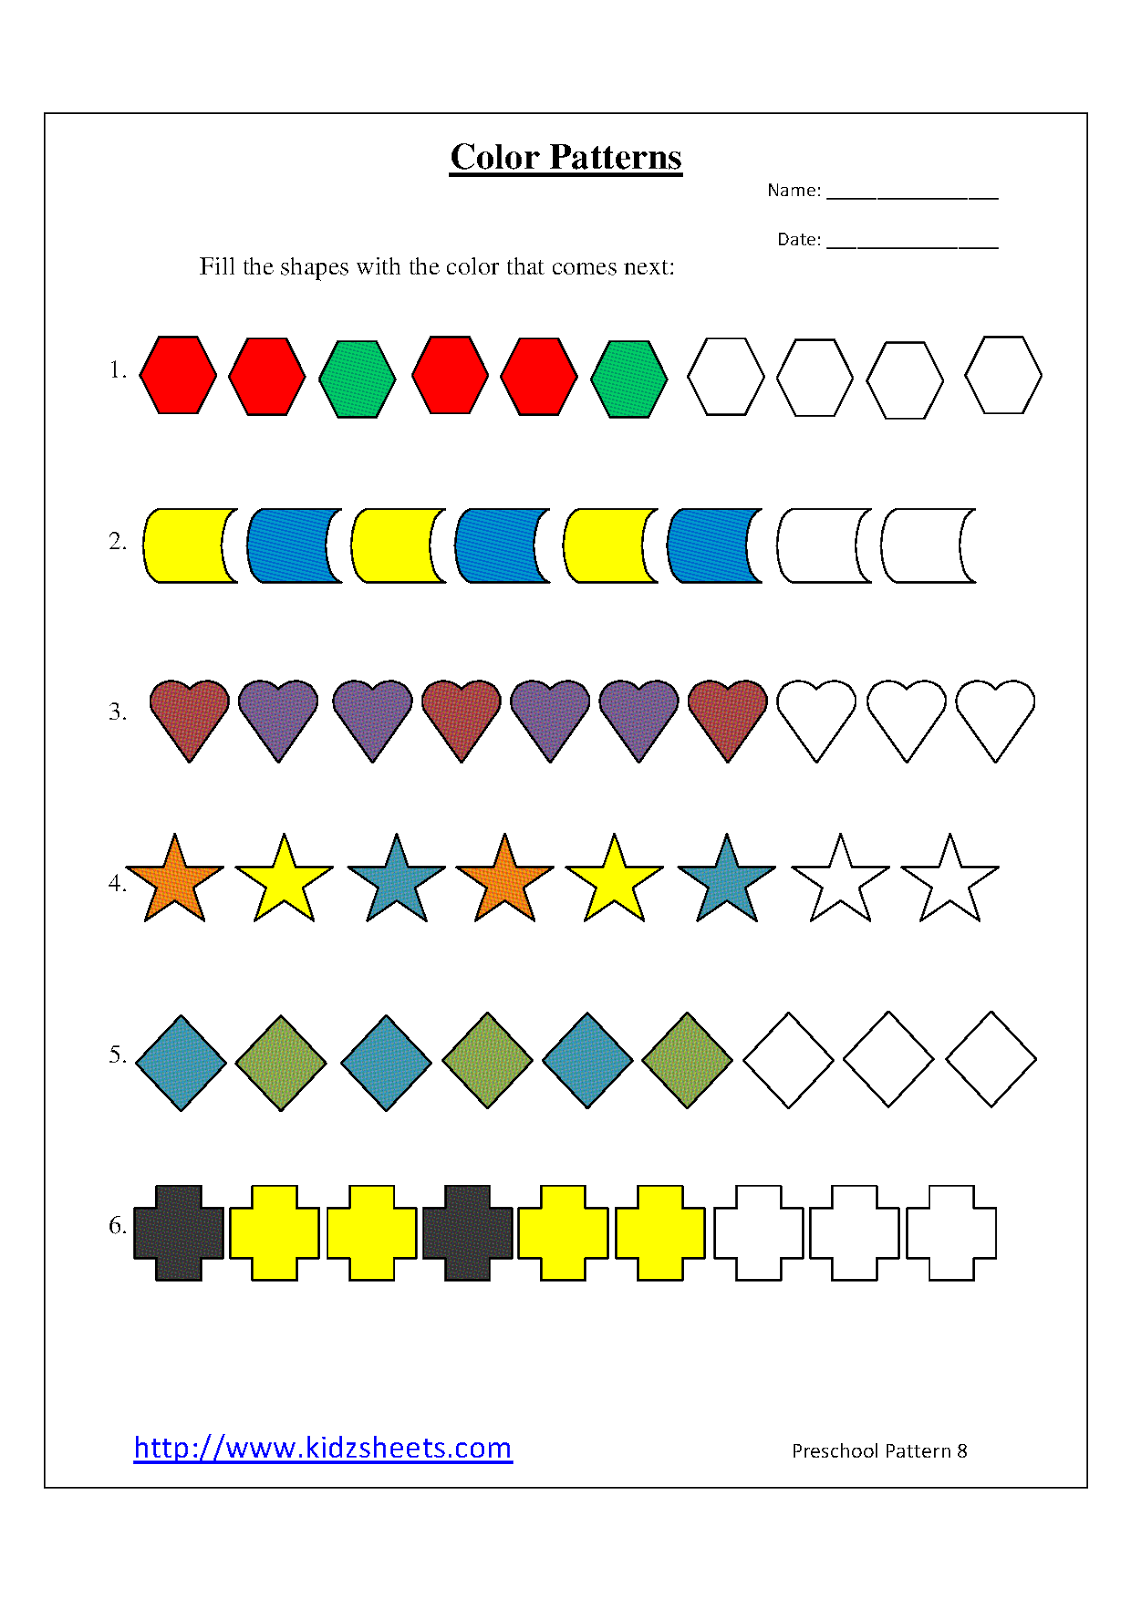 Kidz Worksheets Preschool Color Patterns Worksheet8 – Pattern Worksheets for Preschool